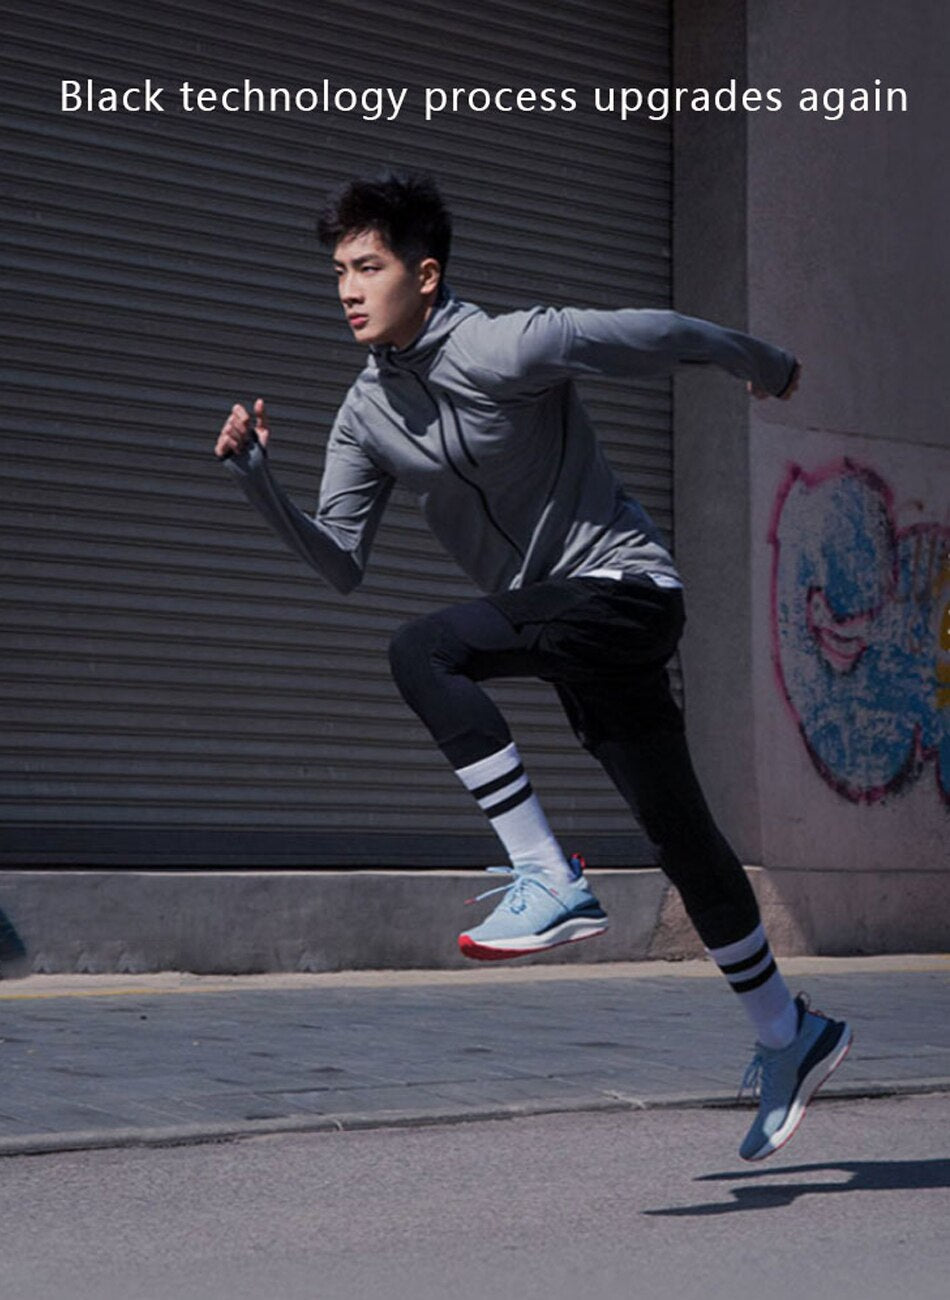 xiaomi mijia sneakers sports shoes 4 running in india